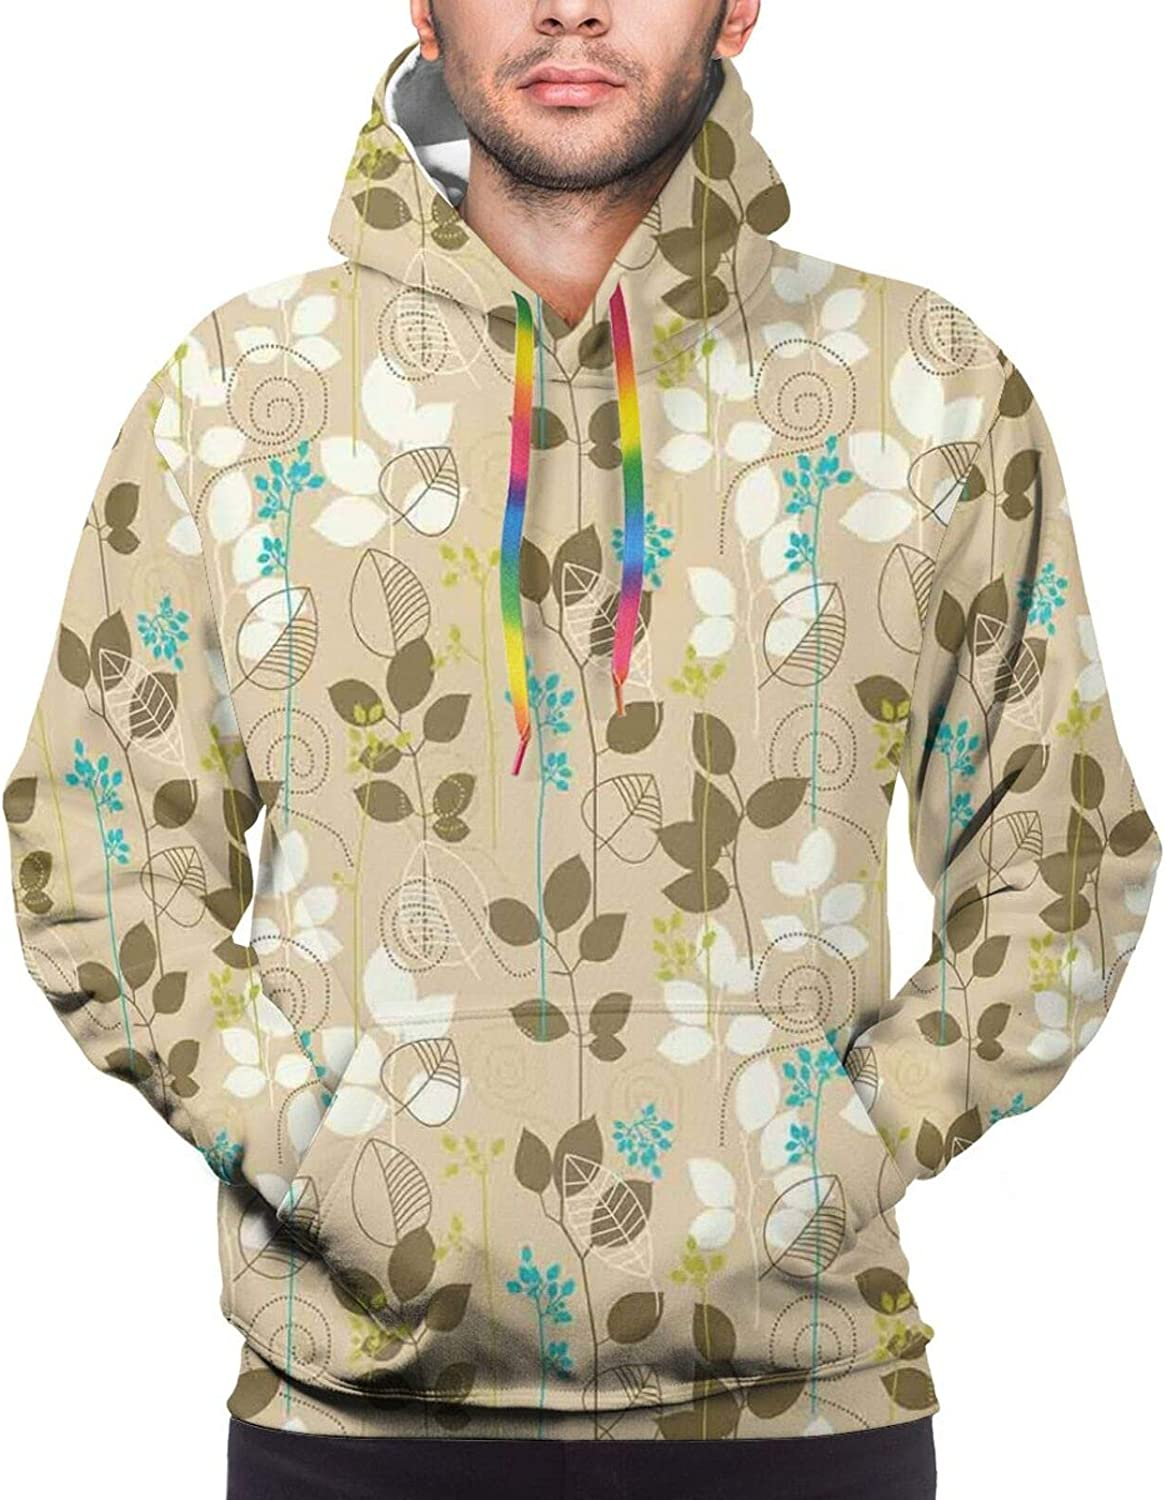 Men's Hoodies Sweatshirts,Retro Drawn Doodled Floral Elements Bloomed Roses and Swirled Geometric Figures